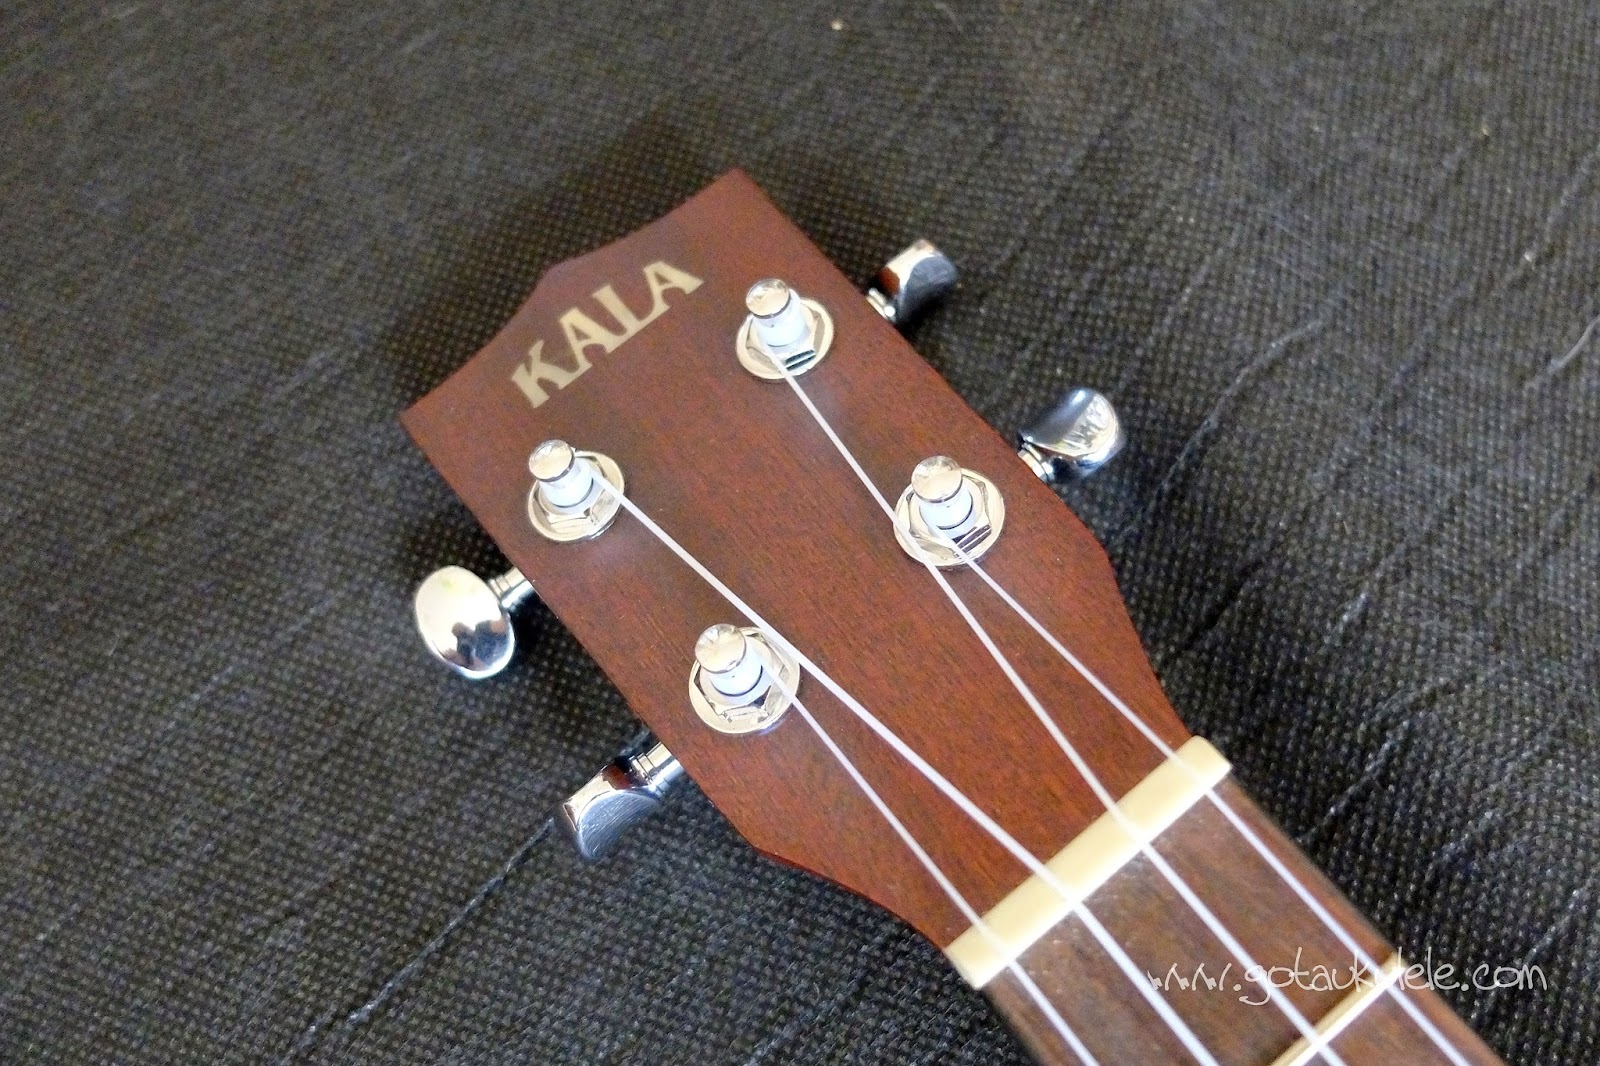 Kala KA-RES- CHR Tenor Resonator ukulele headstock